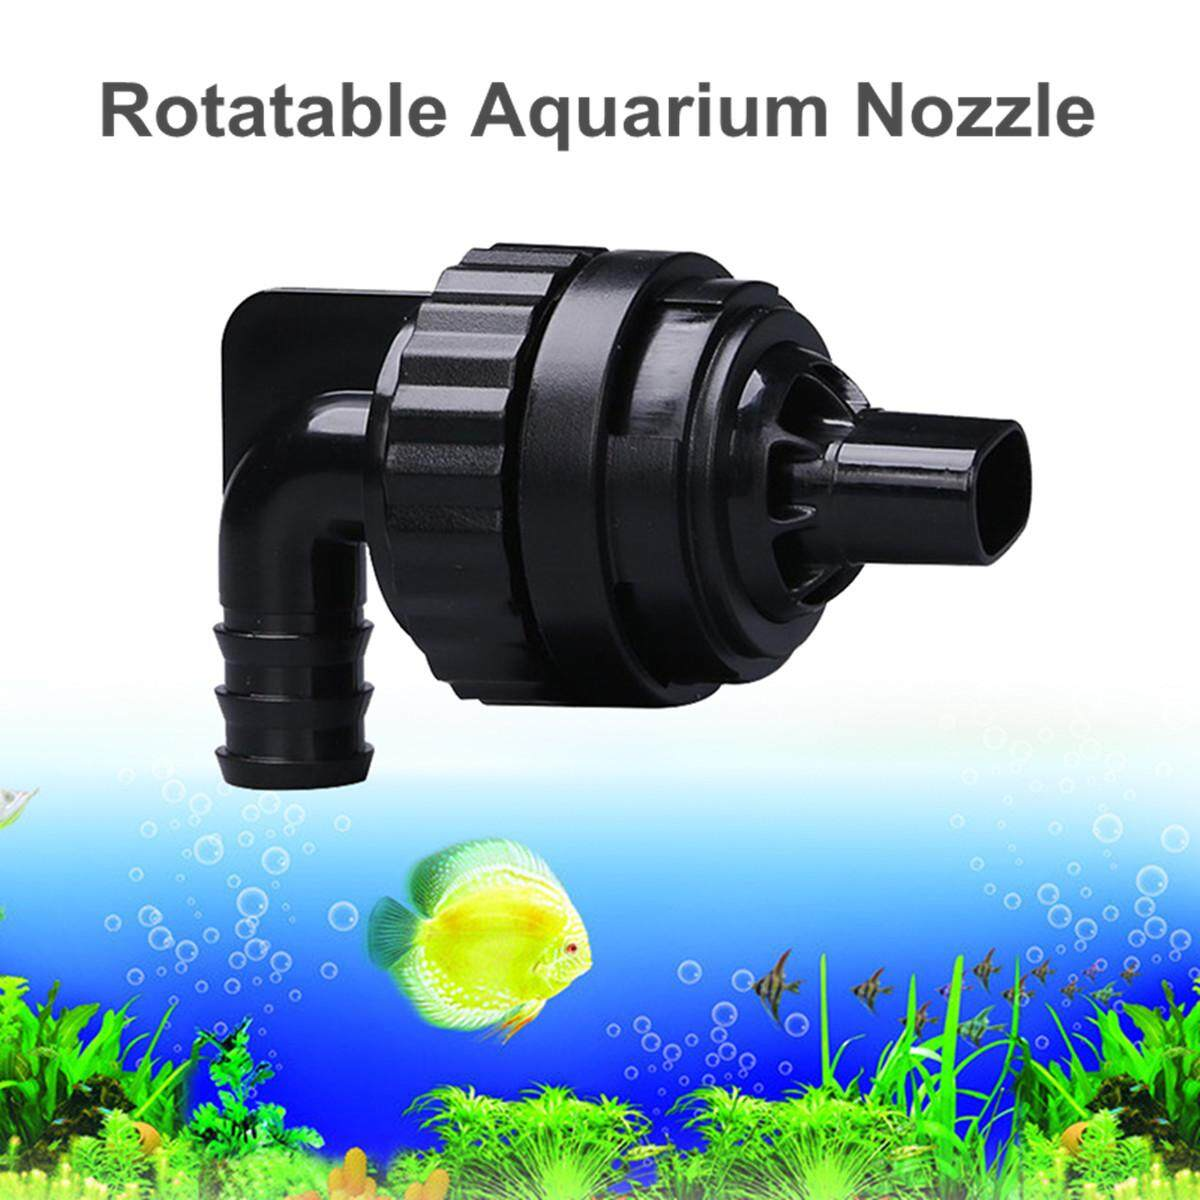 Rotatable Aquarium Fish Tank Water Outlet Nozzle Return Pipe Plumbing Fittings By Moonbeam.